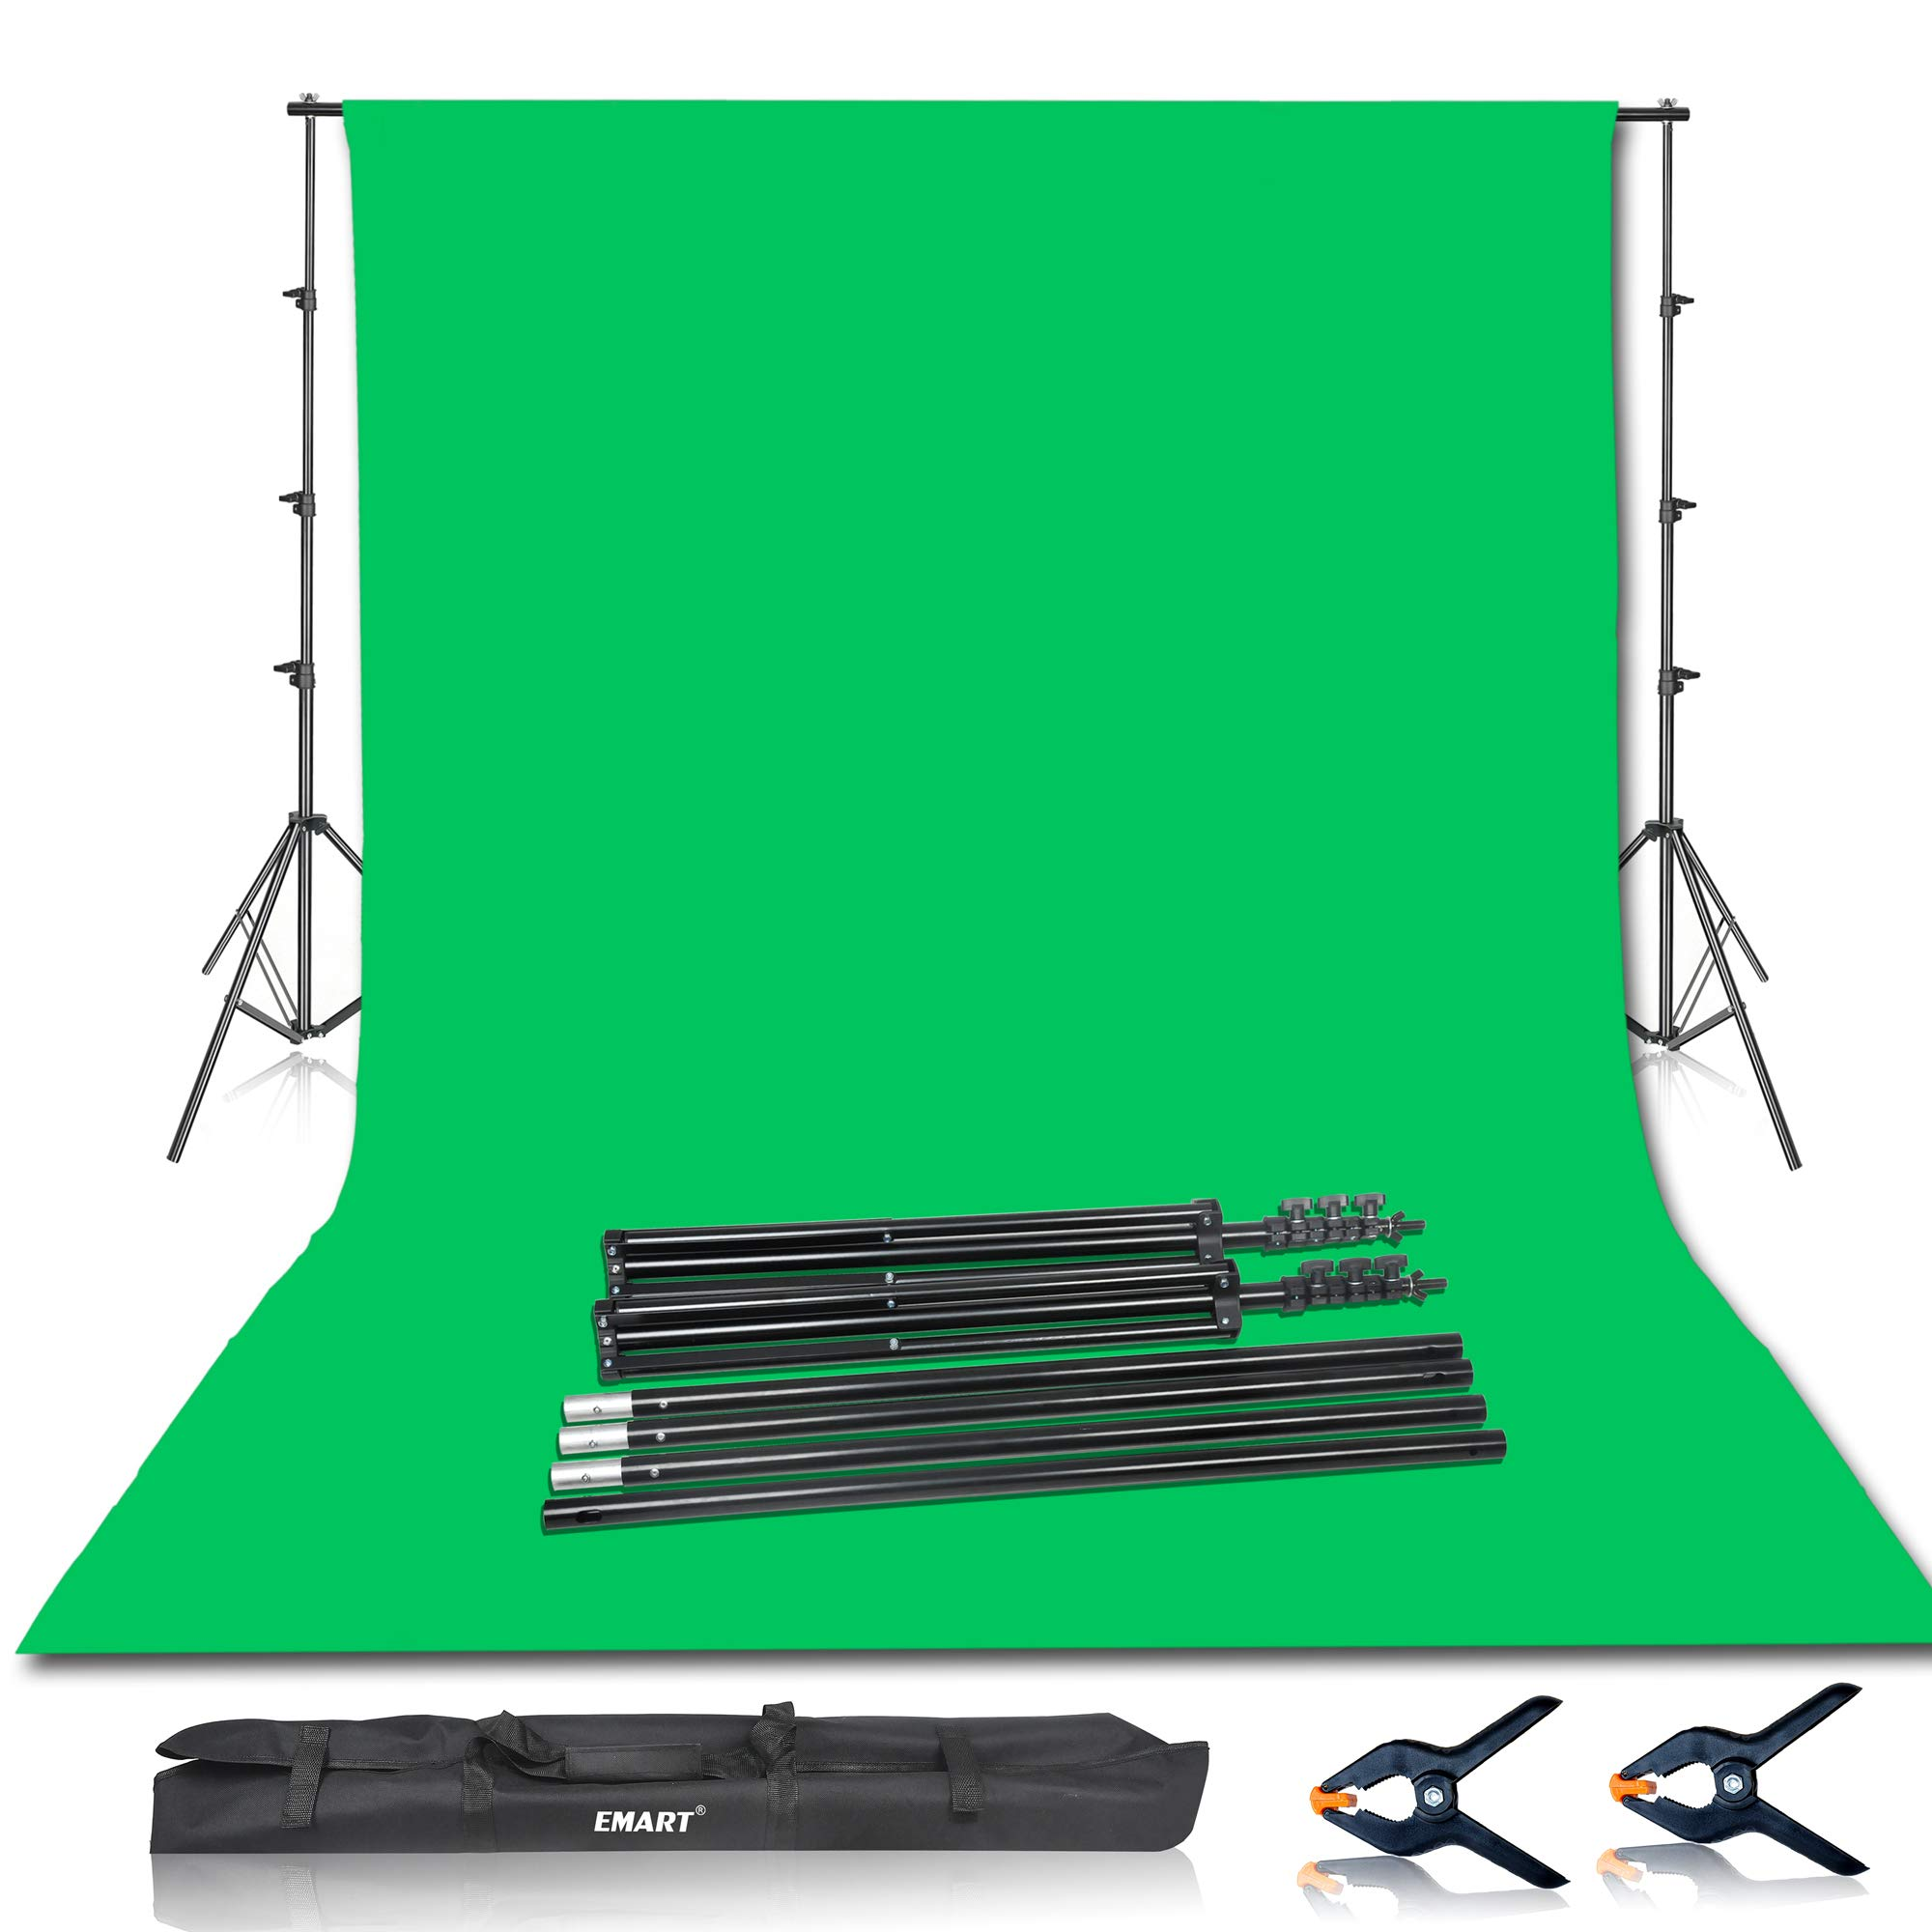 Emart Photo Video Studio 8.5 x 10ft Green Screen Backdrop Stand Kit, Photography Background Support System with 10 x12ft 100% Cotton Muslin Chromakey Backdrop by EMART